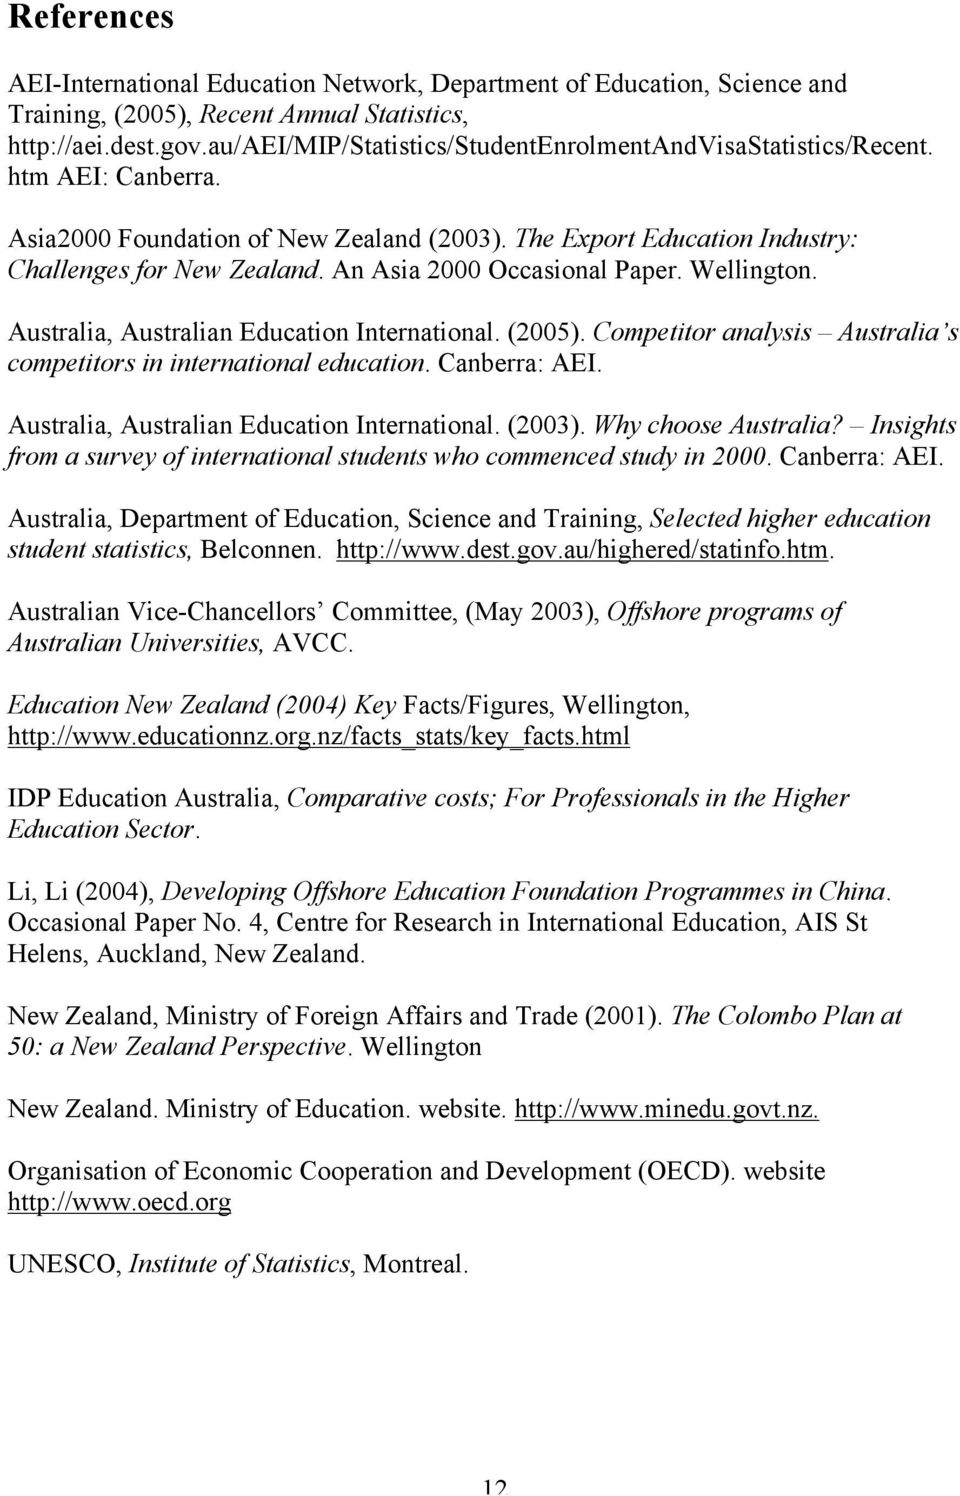 An Asia 2000 Occasional Paper. Wellington. Australia, Australian Education International. (2005). Competitor analysis Australia s competitors in international education. Canberra: AEI.